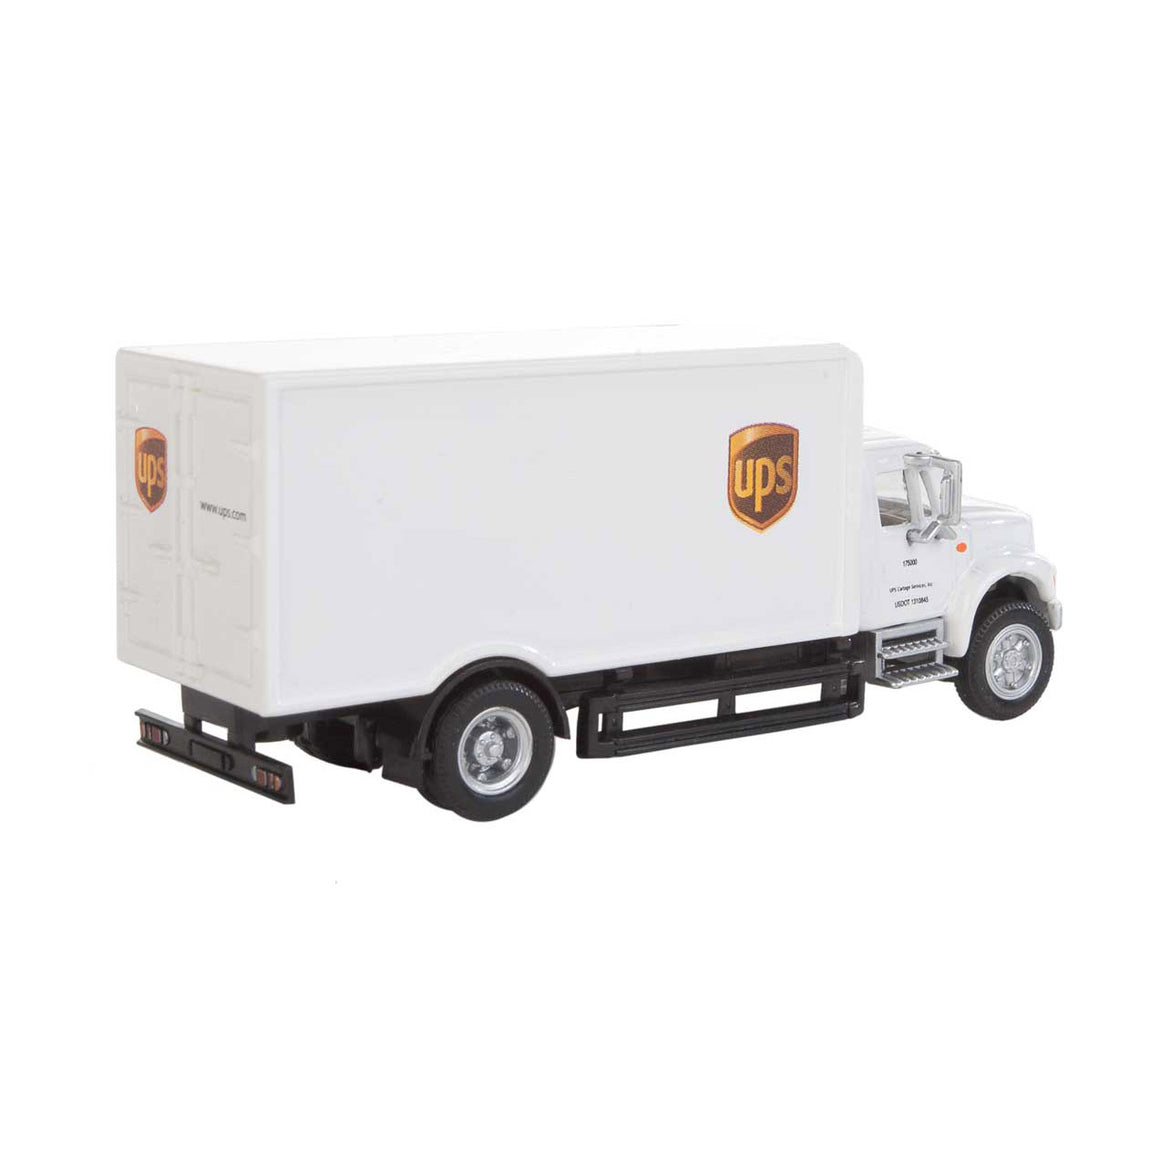 HO Scale: International® 4900 Single Axle Box Van - UPS 'Cartage Services'